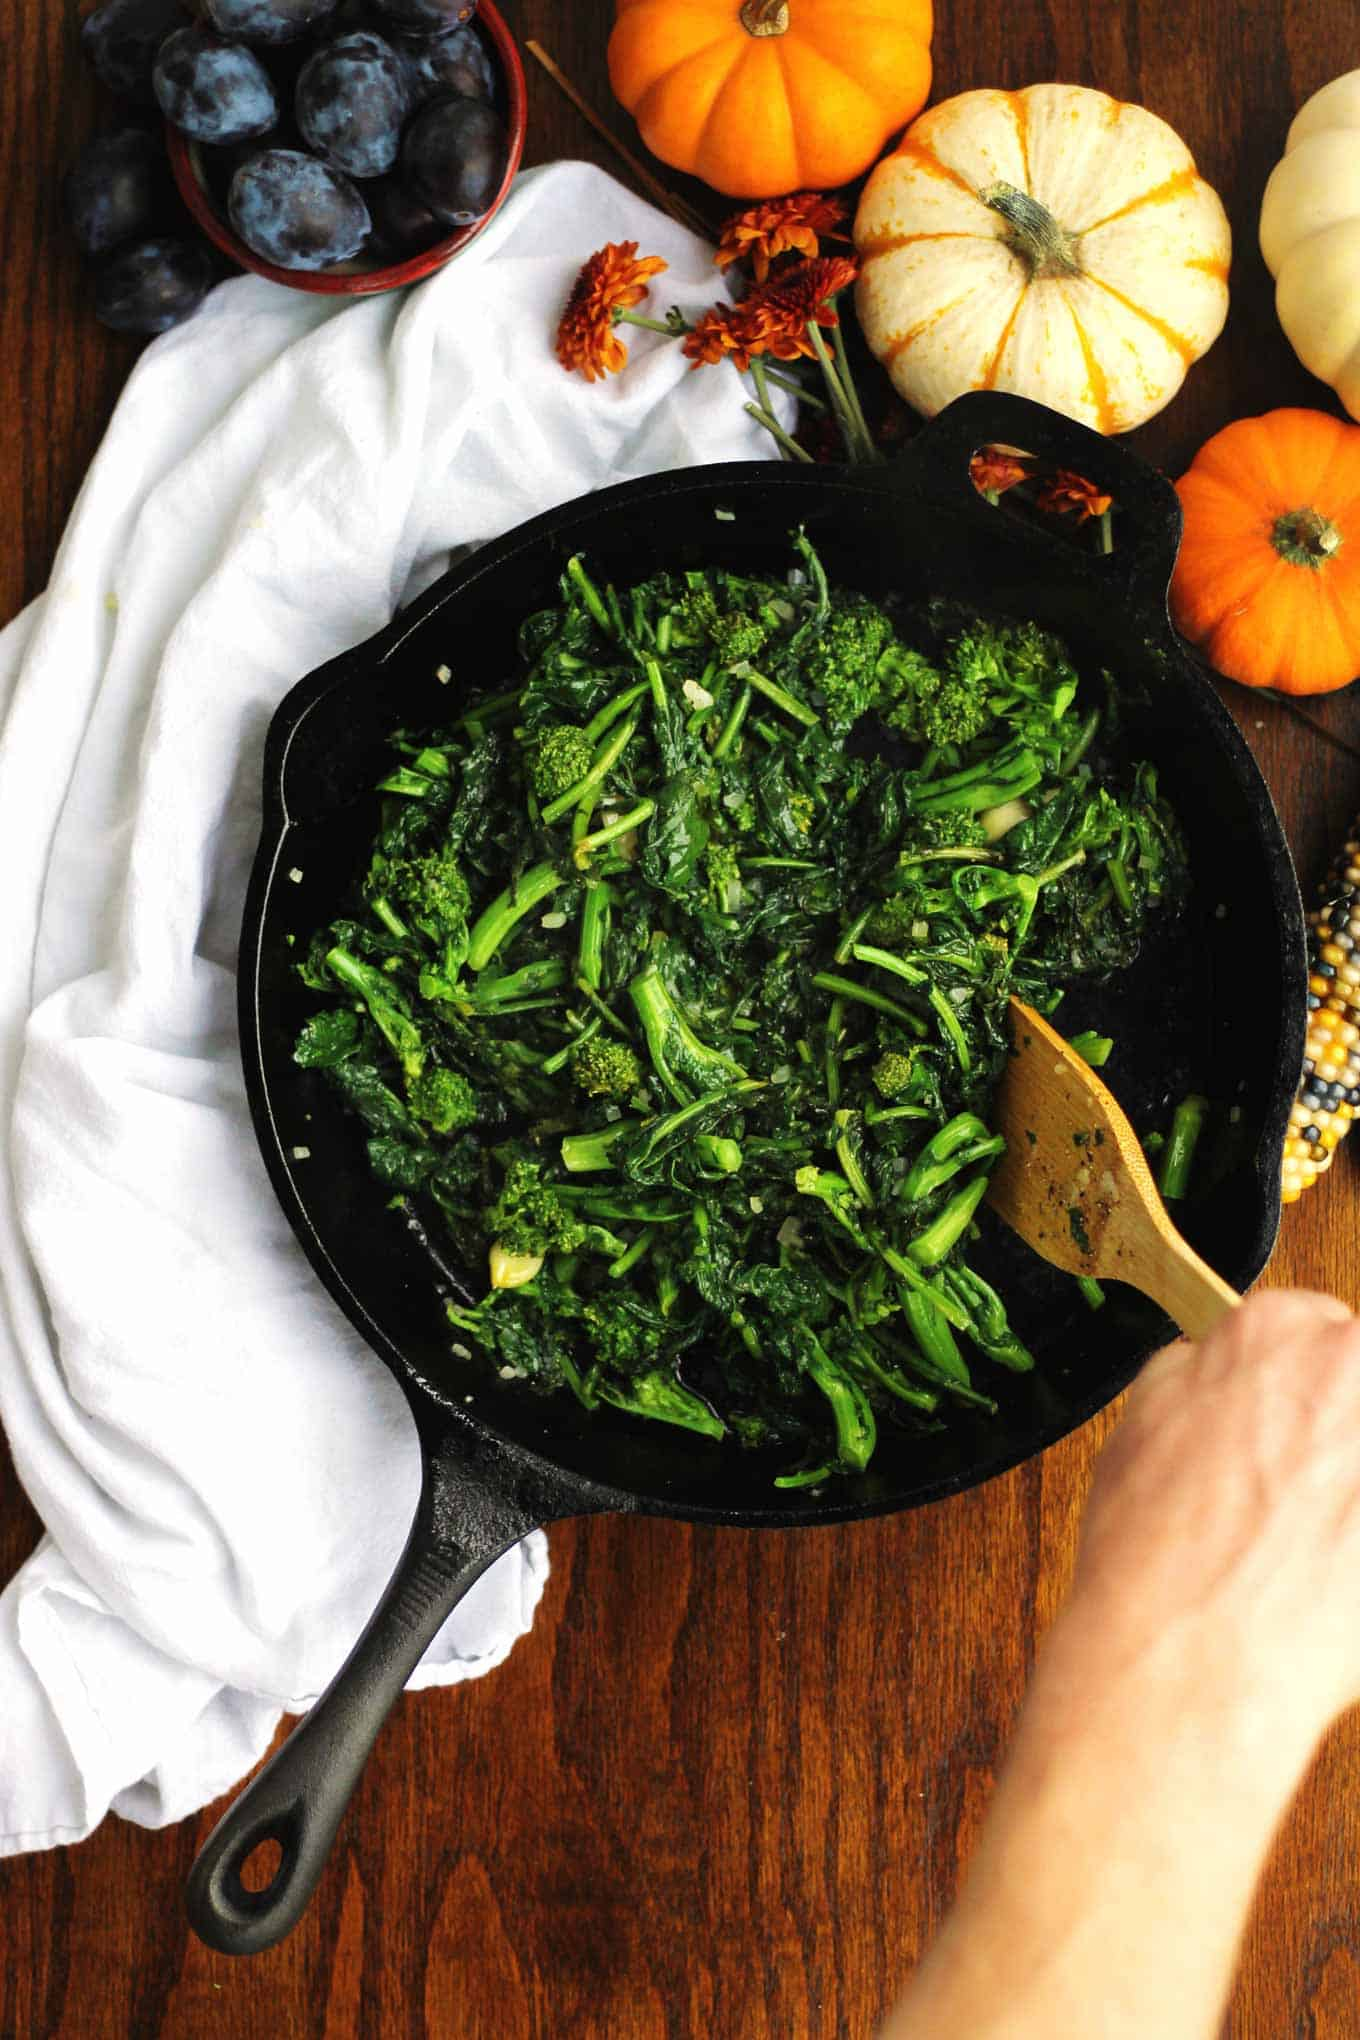 sauteed broccoli rabe and kale